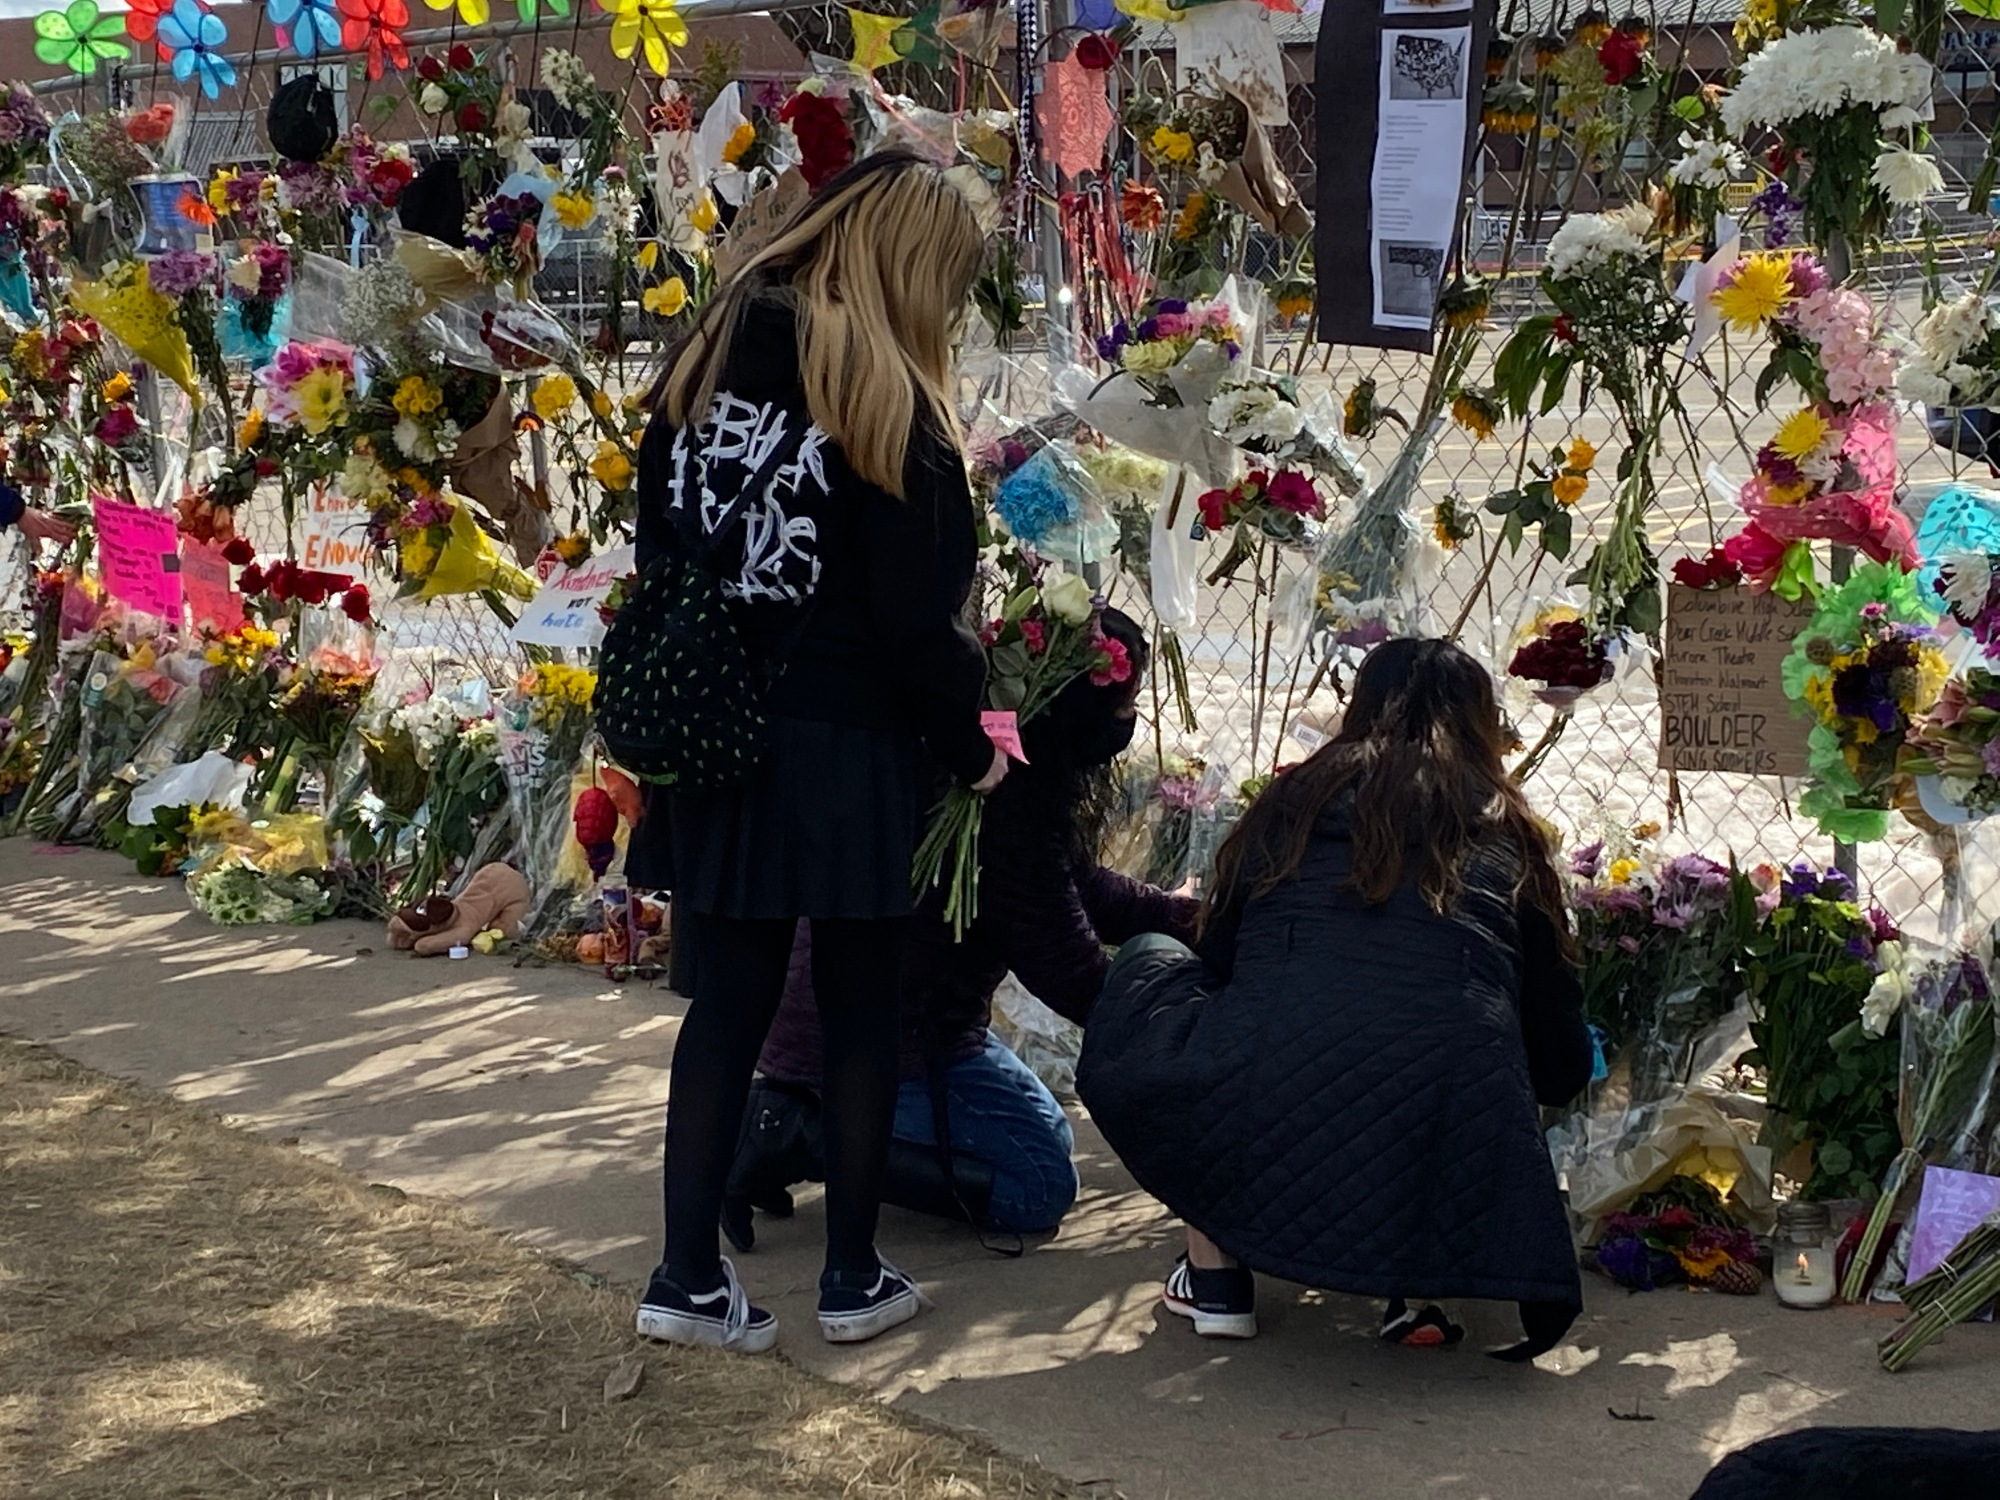 Three young women place flowers at the memorial site set up around the perimeter of the Table Mesa King Soopers parking lot.